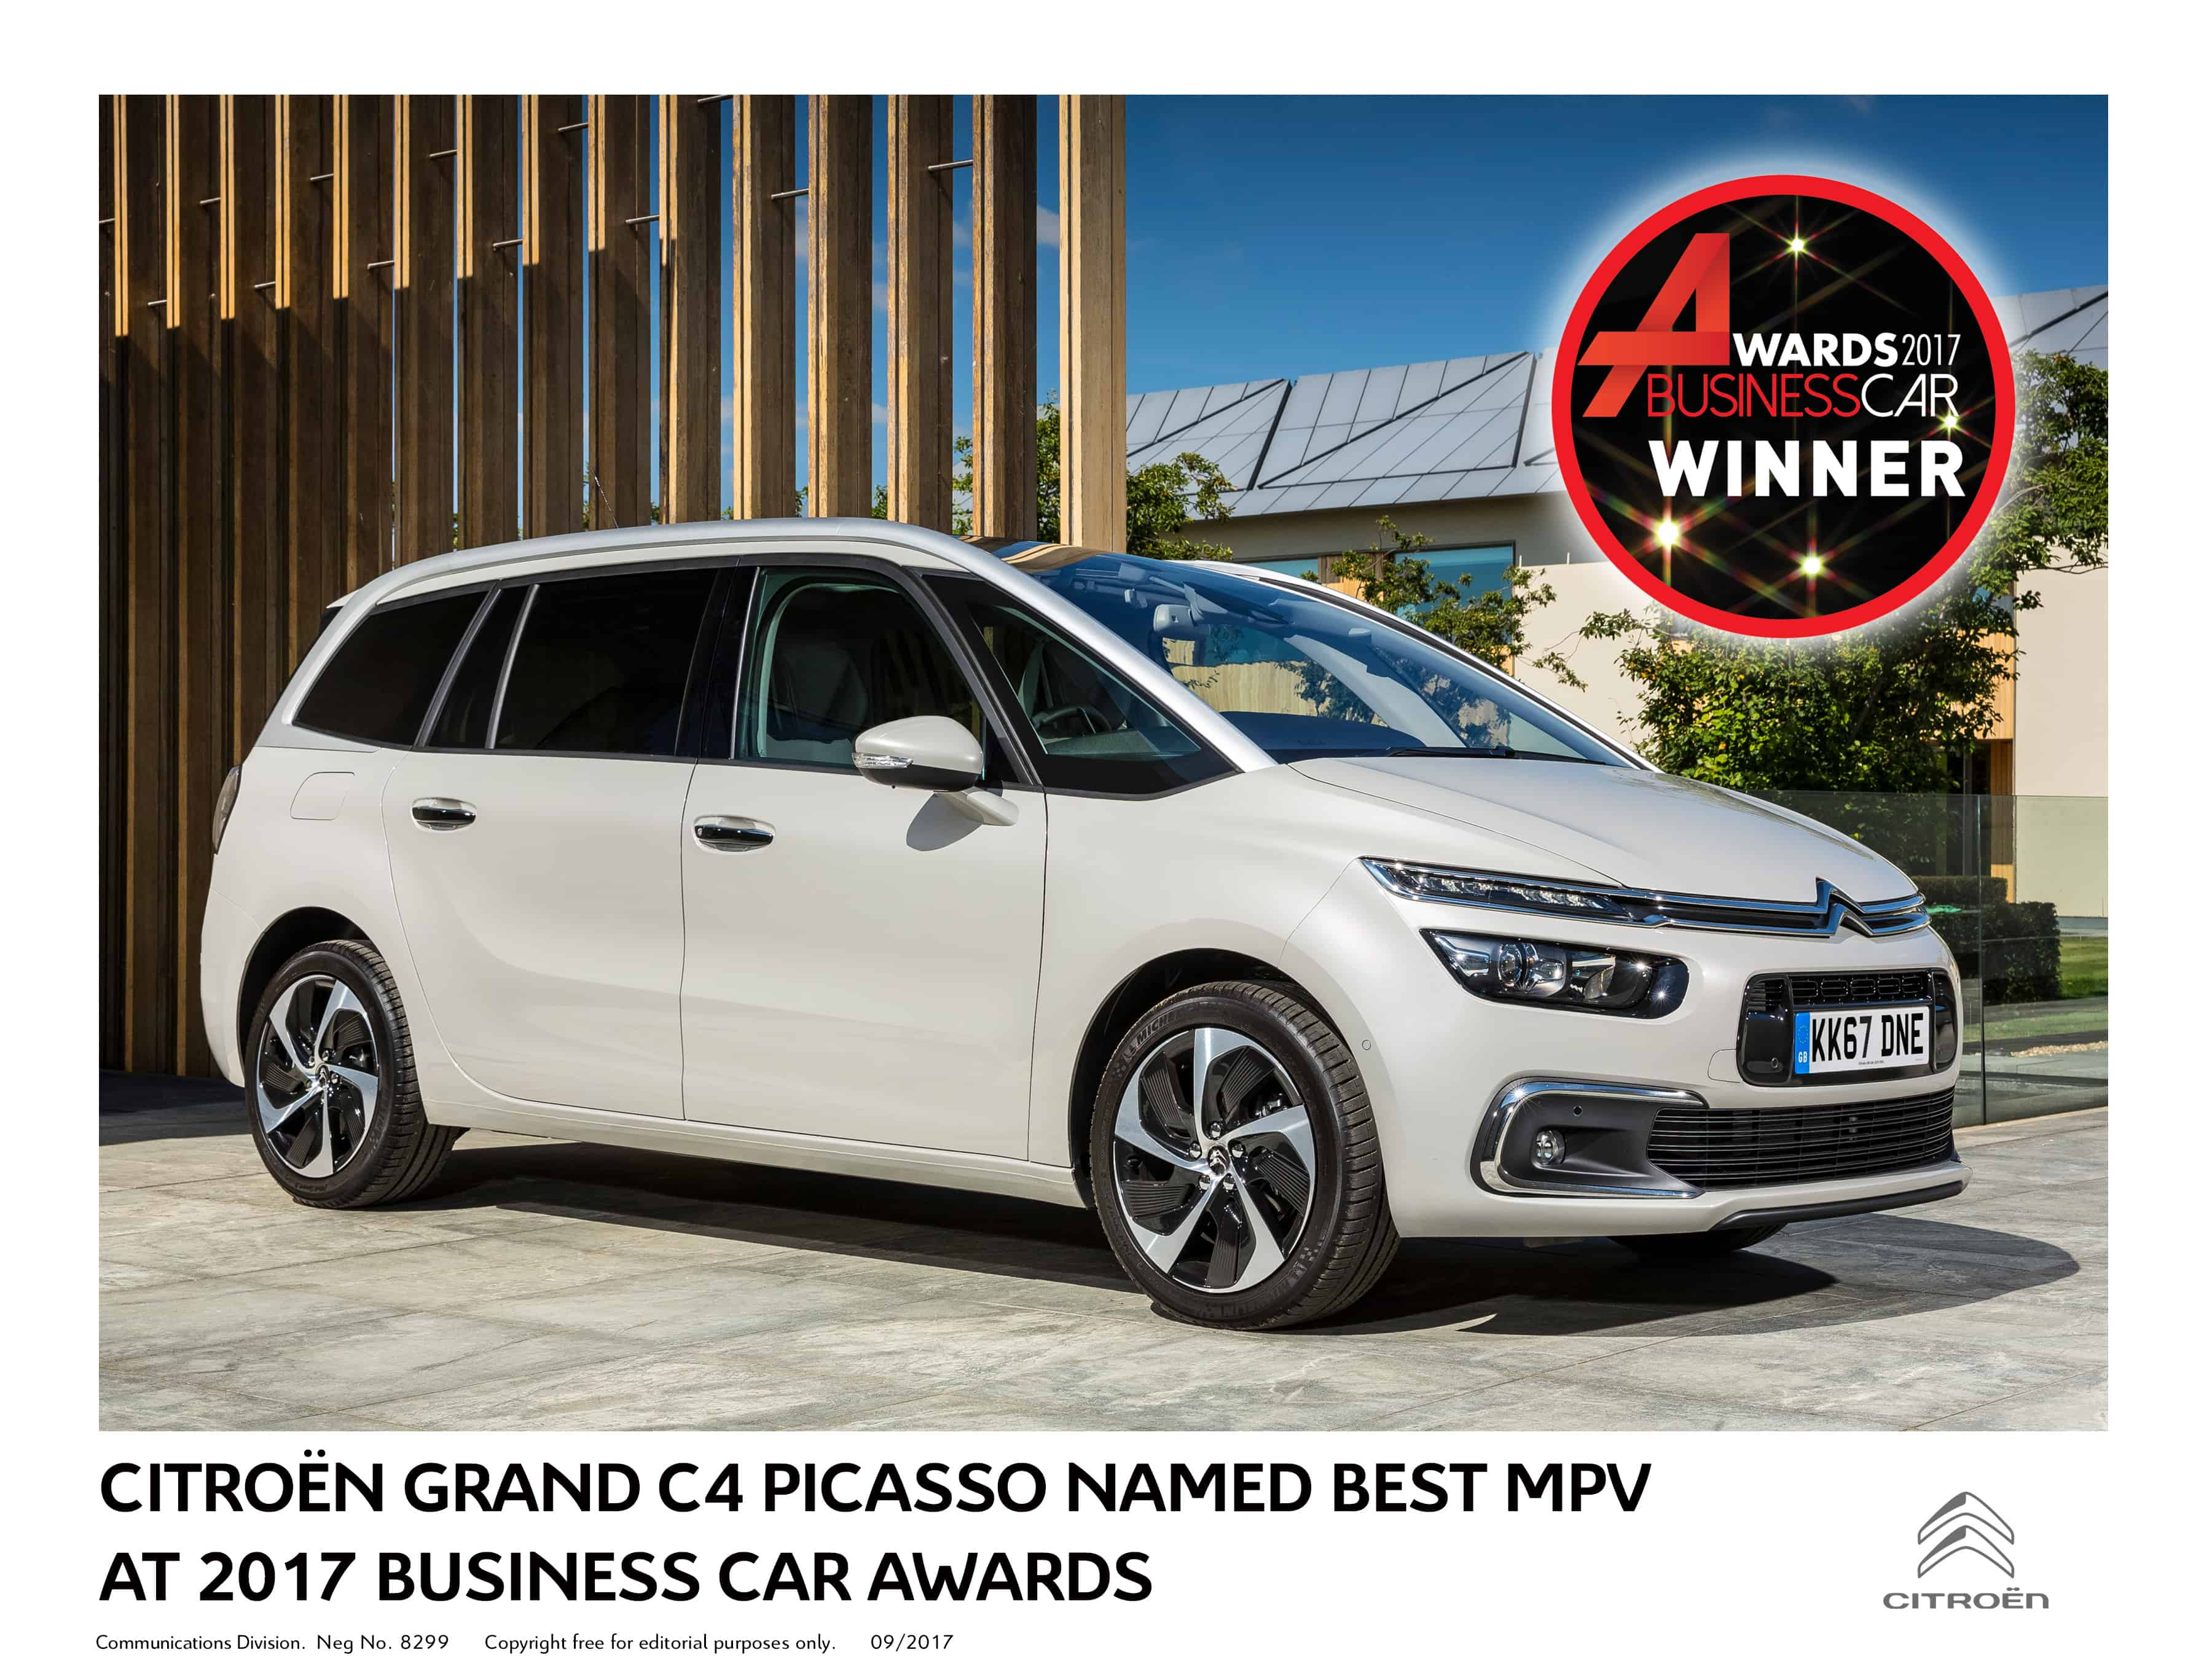 Citroen Grand C4 Picasso Named Best MPV at 2017 Business Car Awards